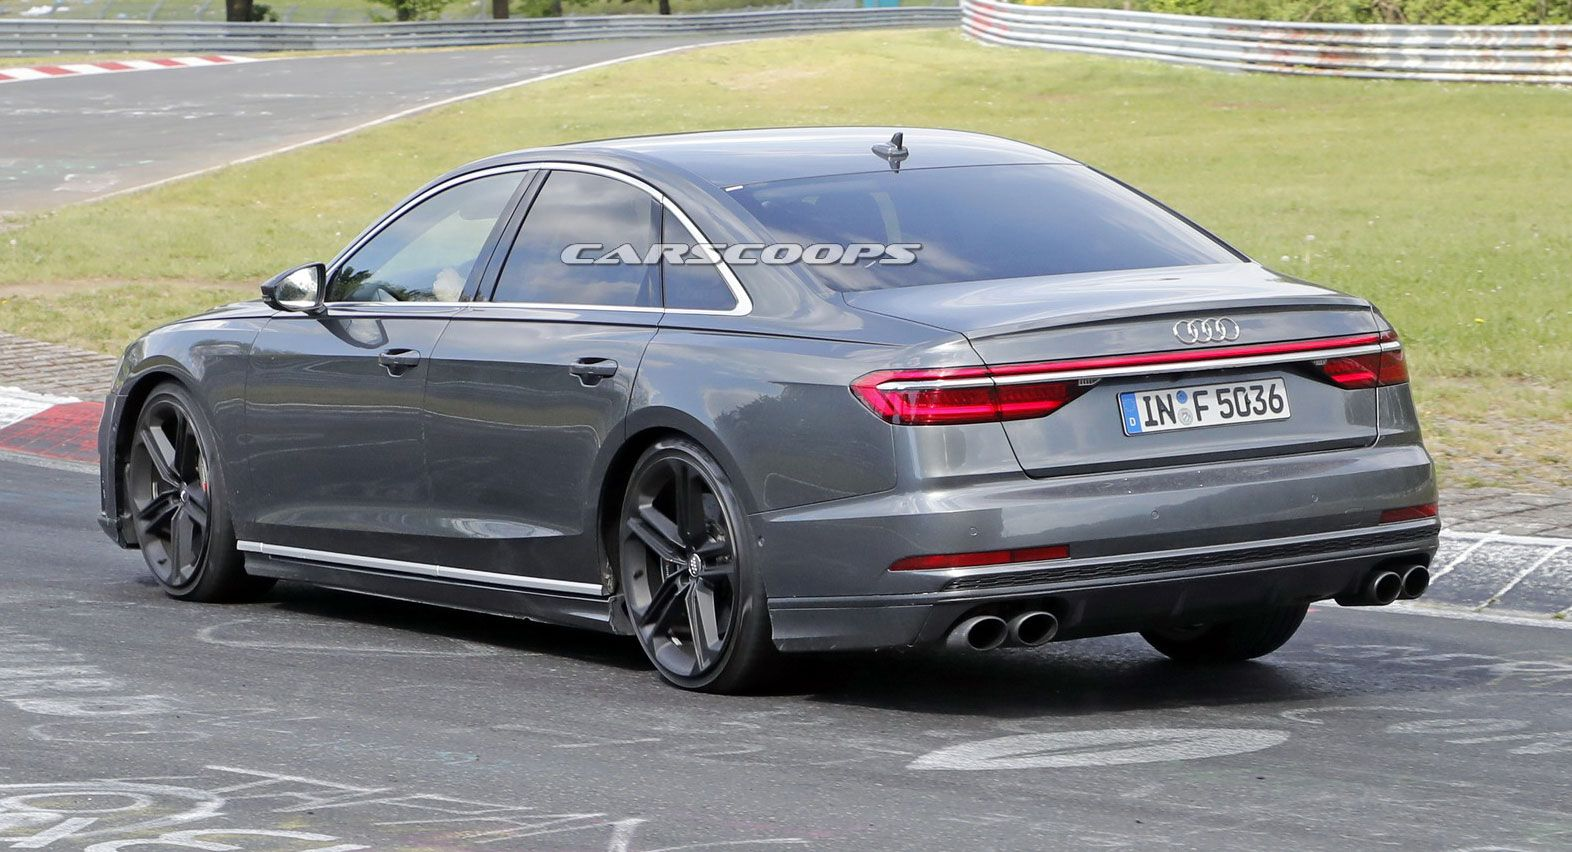 2019 Audi S8 Coming With 530HP Version Of Panamera's Bi-Turbo V8 | Carscoops